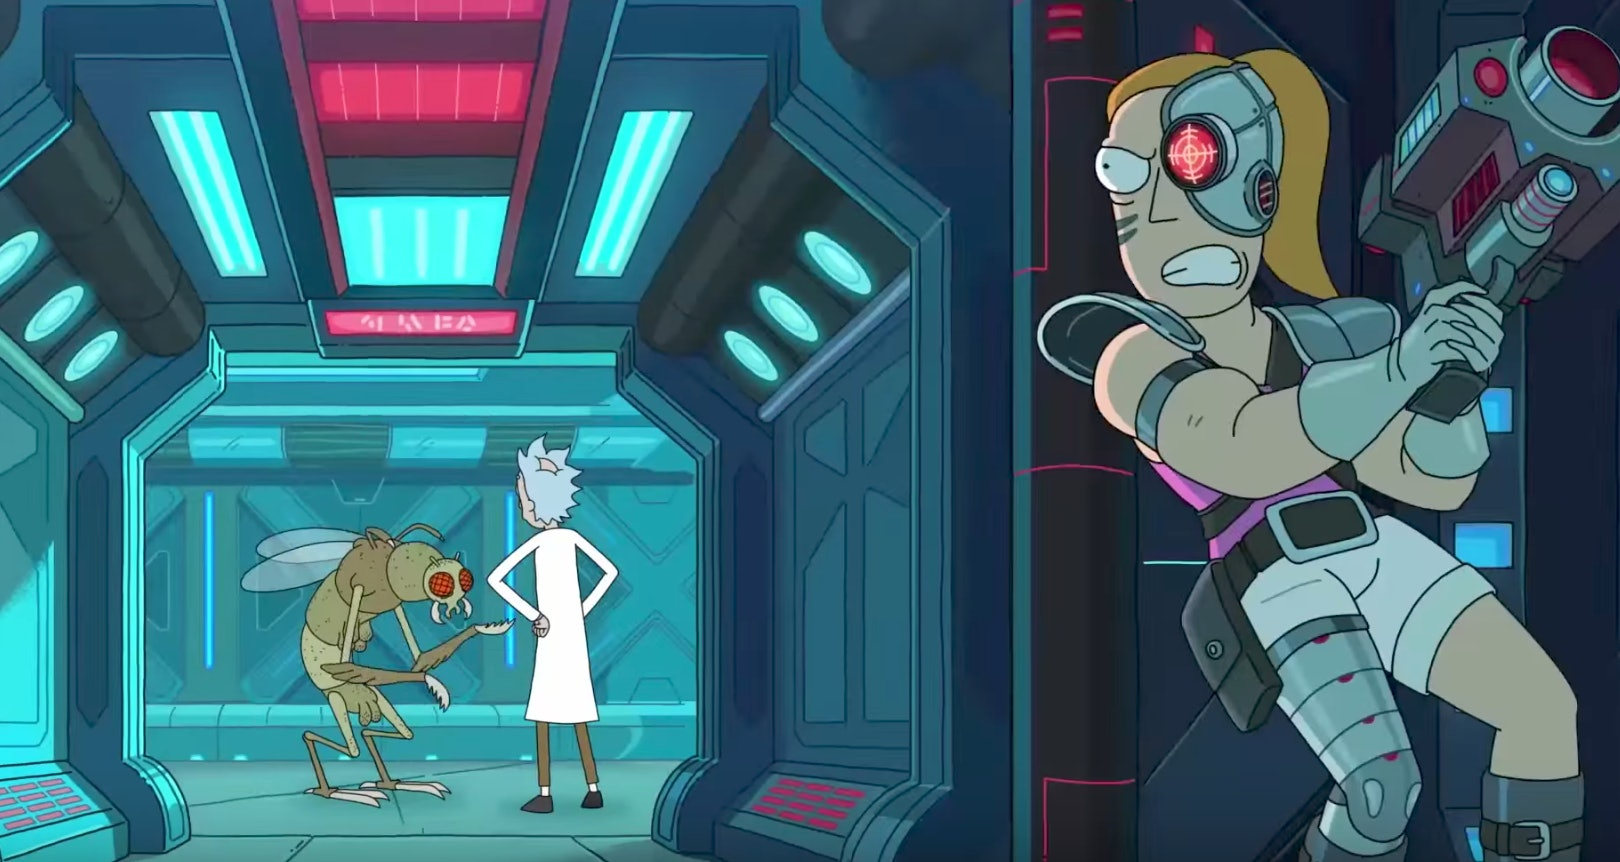 Why is Cyborg Summer stalking Rick? And why is Rick chatting with a Gromflomite?